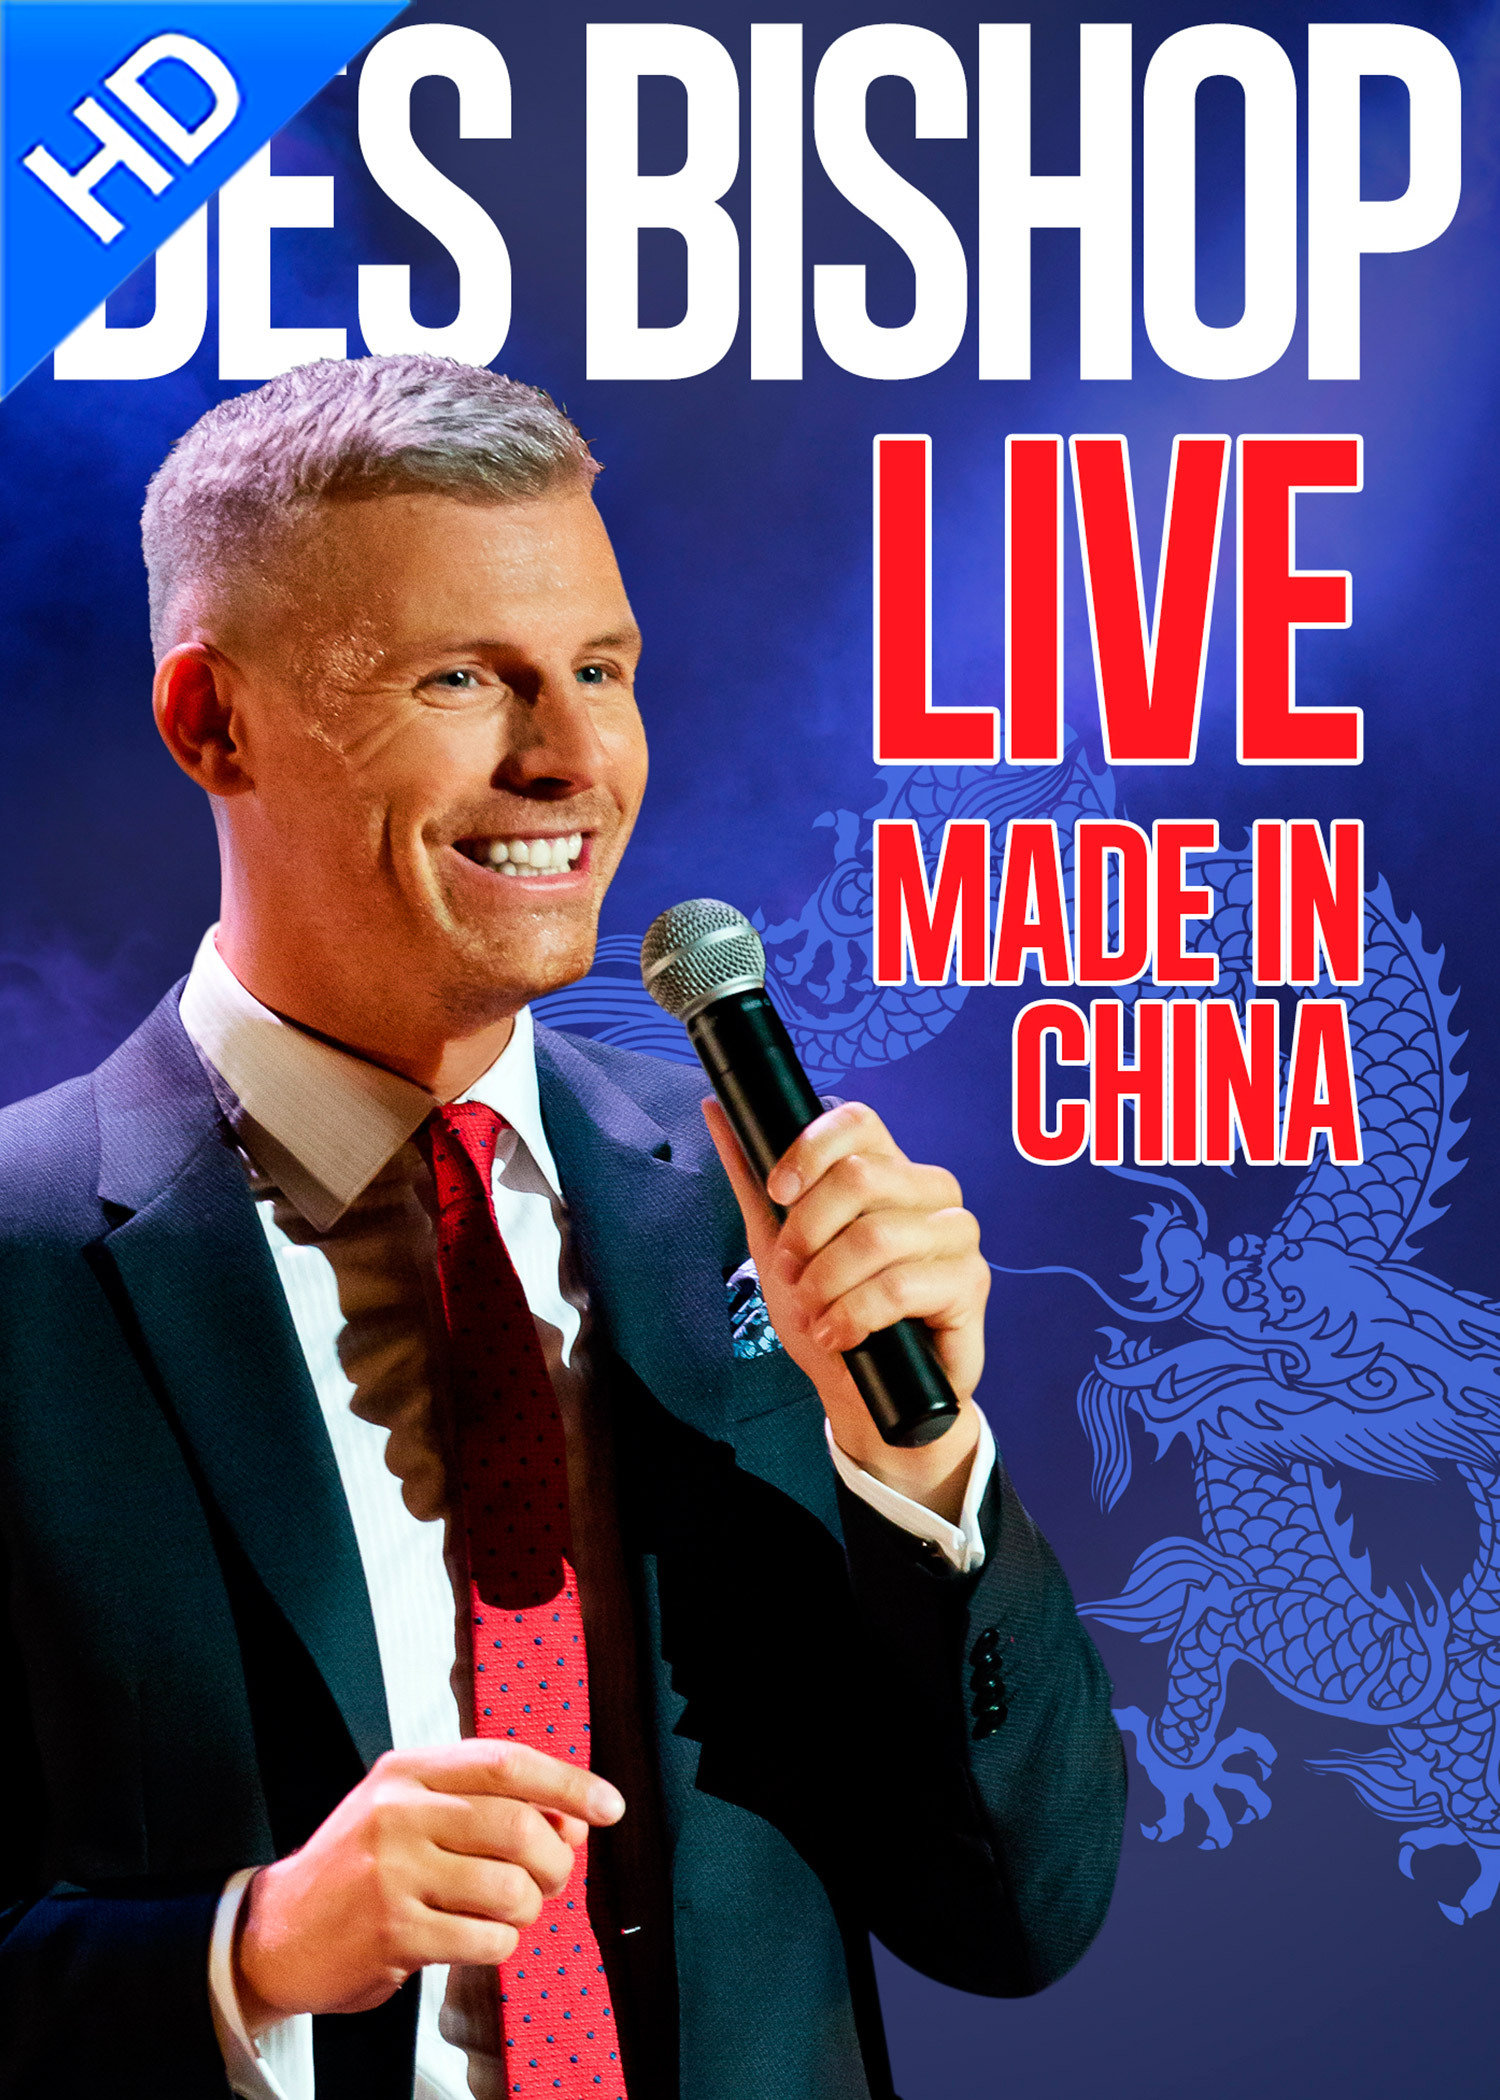 des-bishop-made-in-china